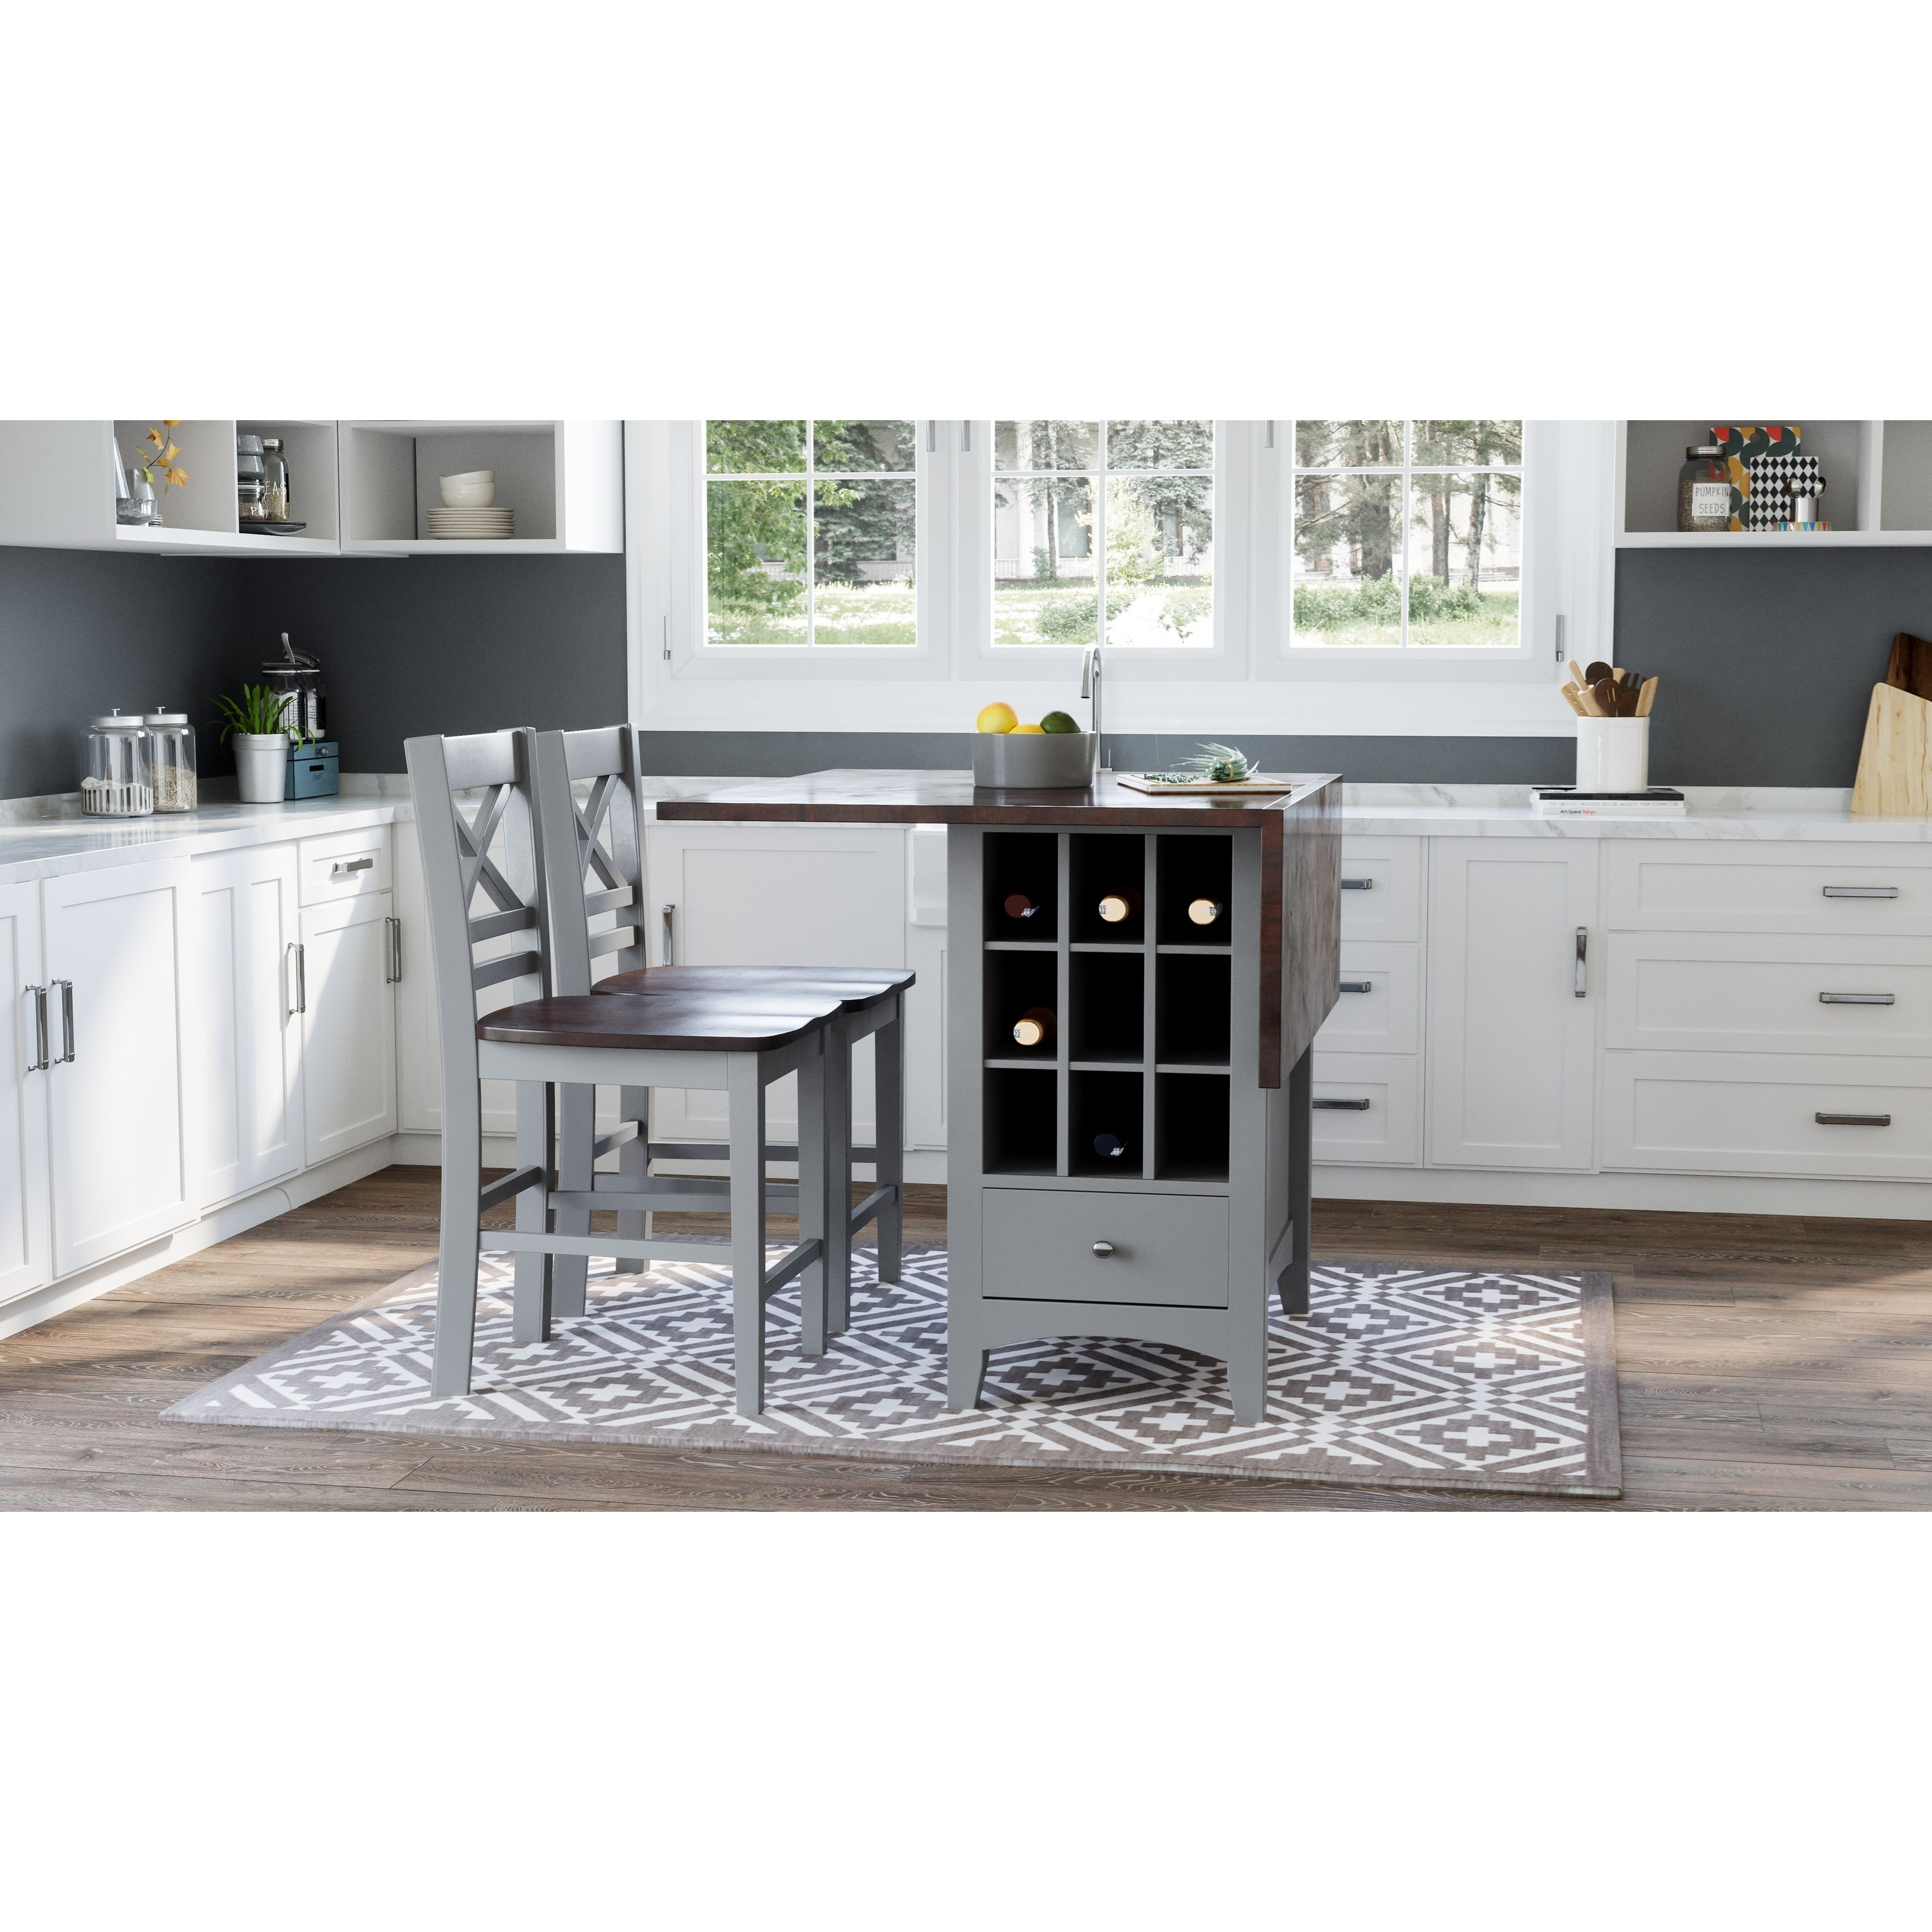 Asbury Park 3-Piece Counter Height Table and Stool Set by Jofran at Lapeer Furniture & Mattress Center